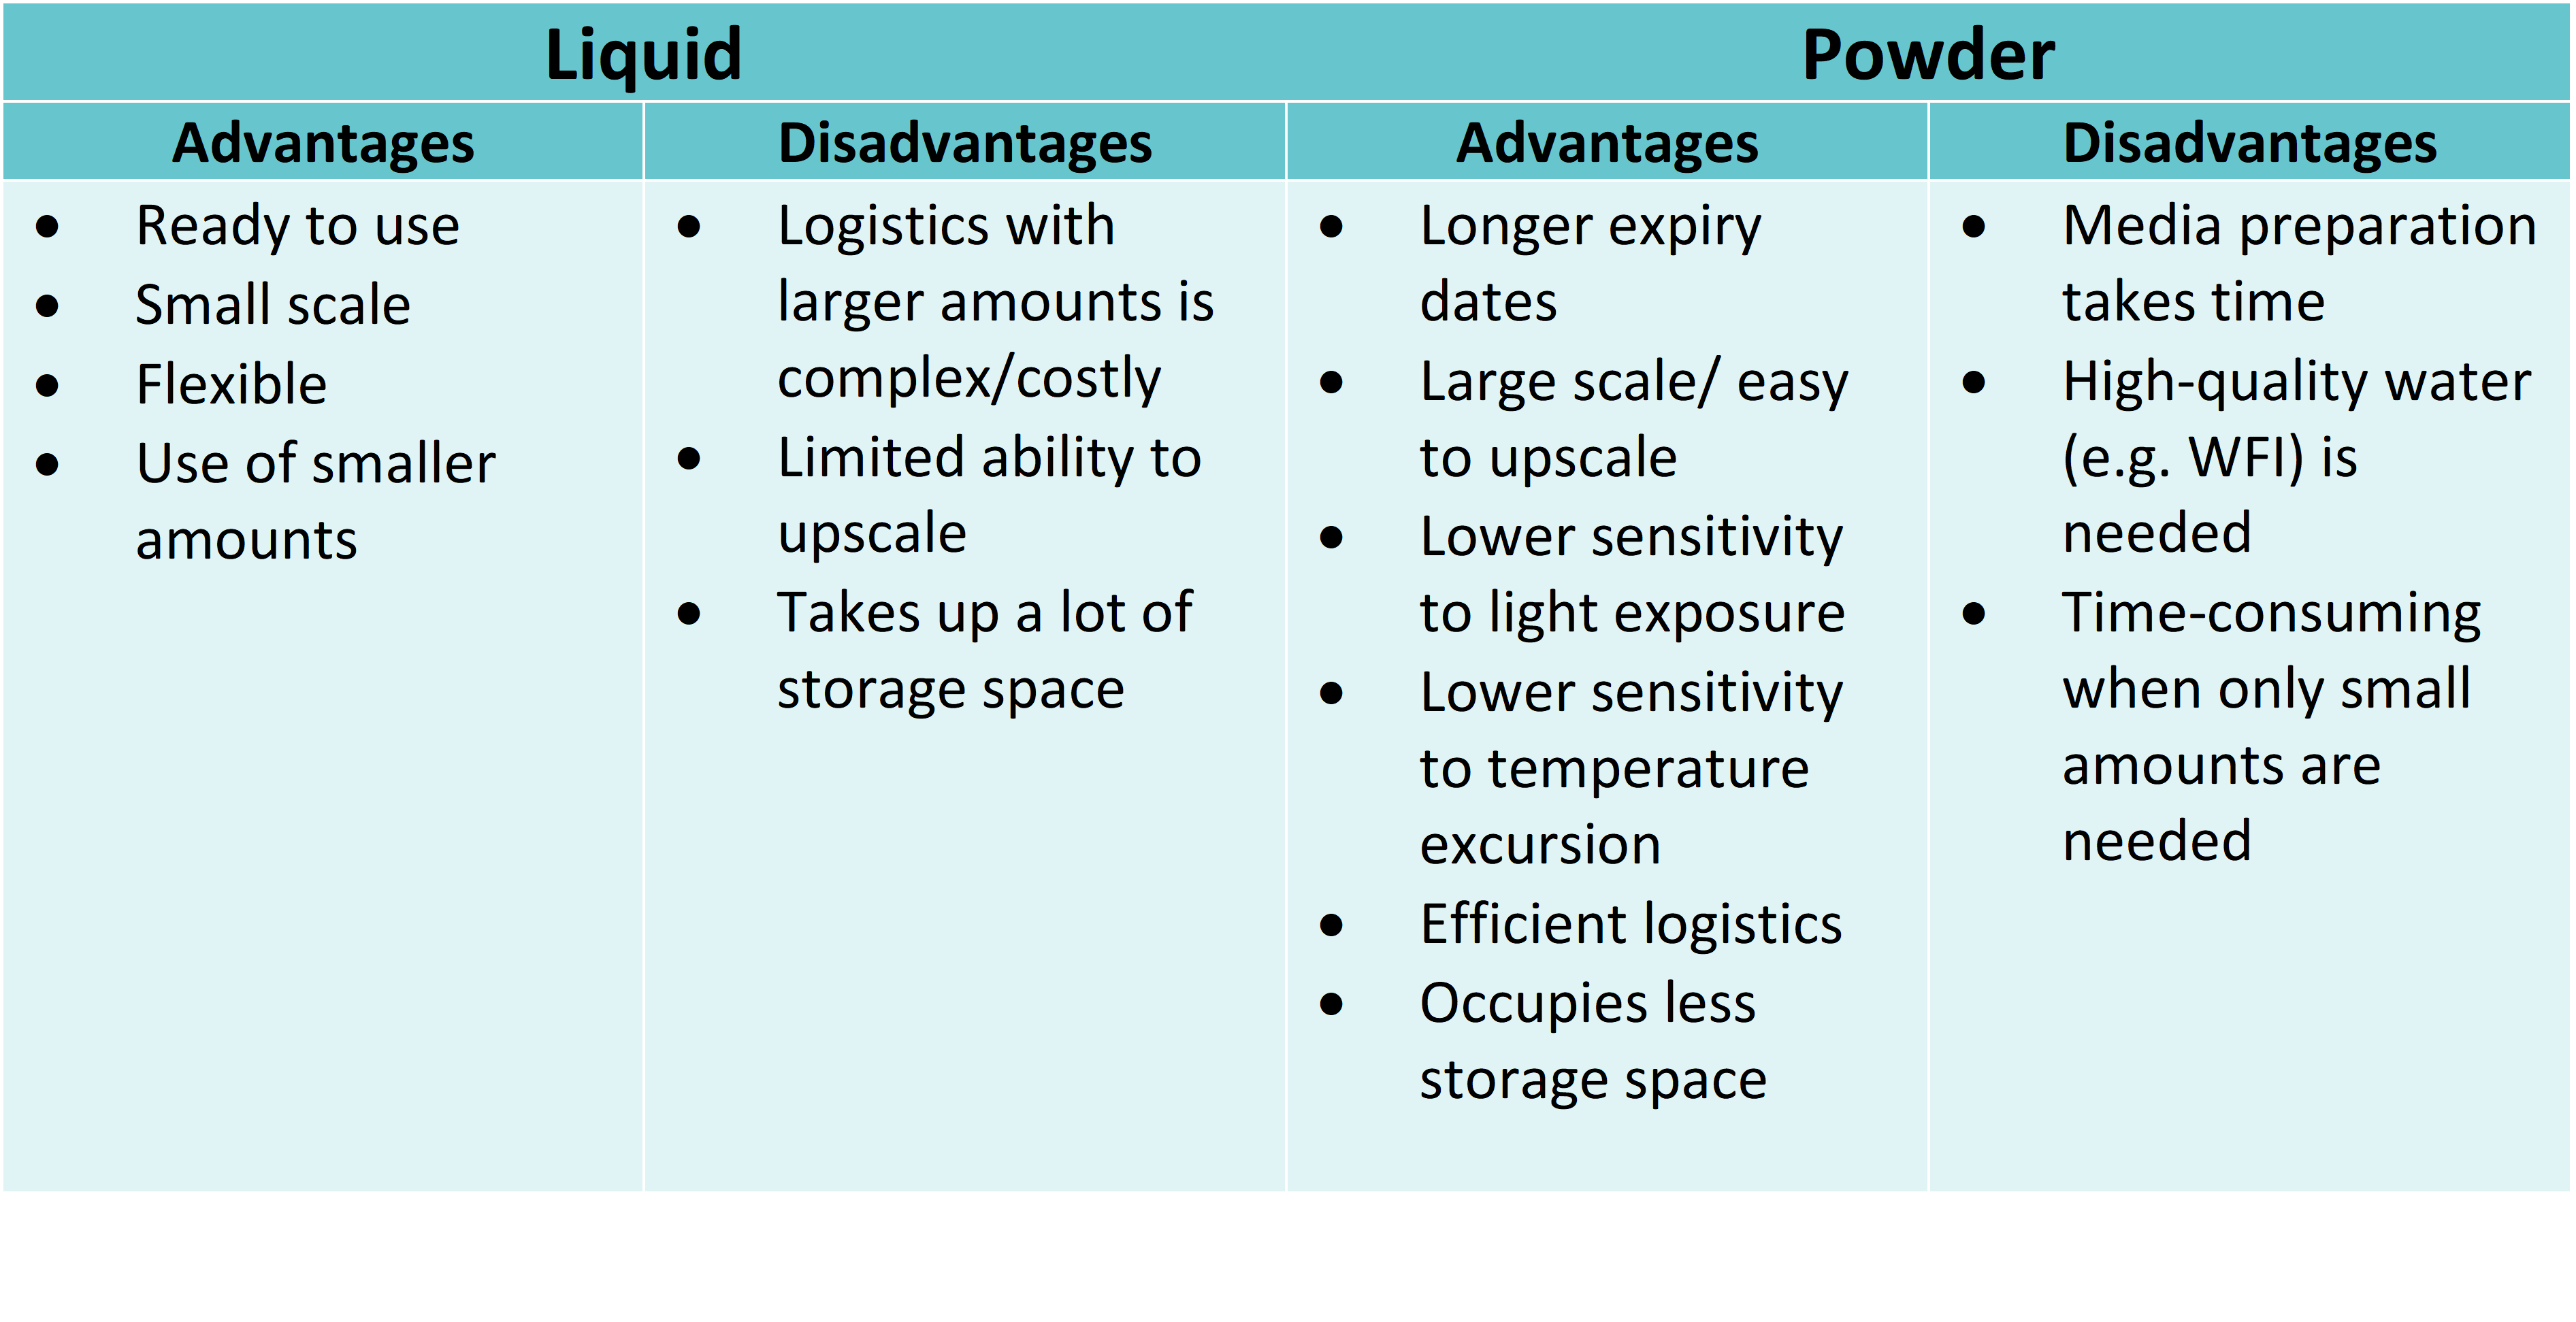 Table. 1 Advantages and disadvantages of liquid and powdered media.